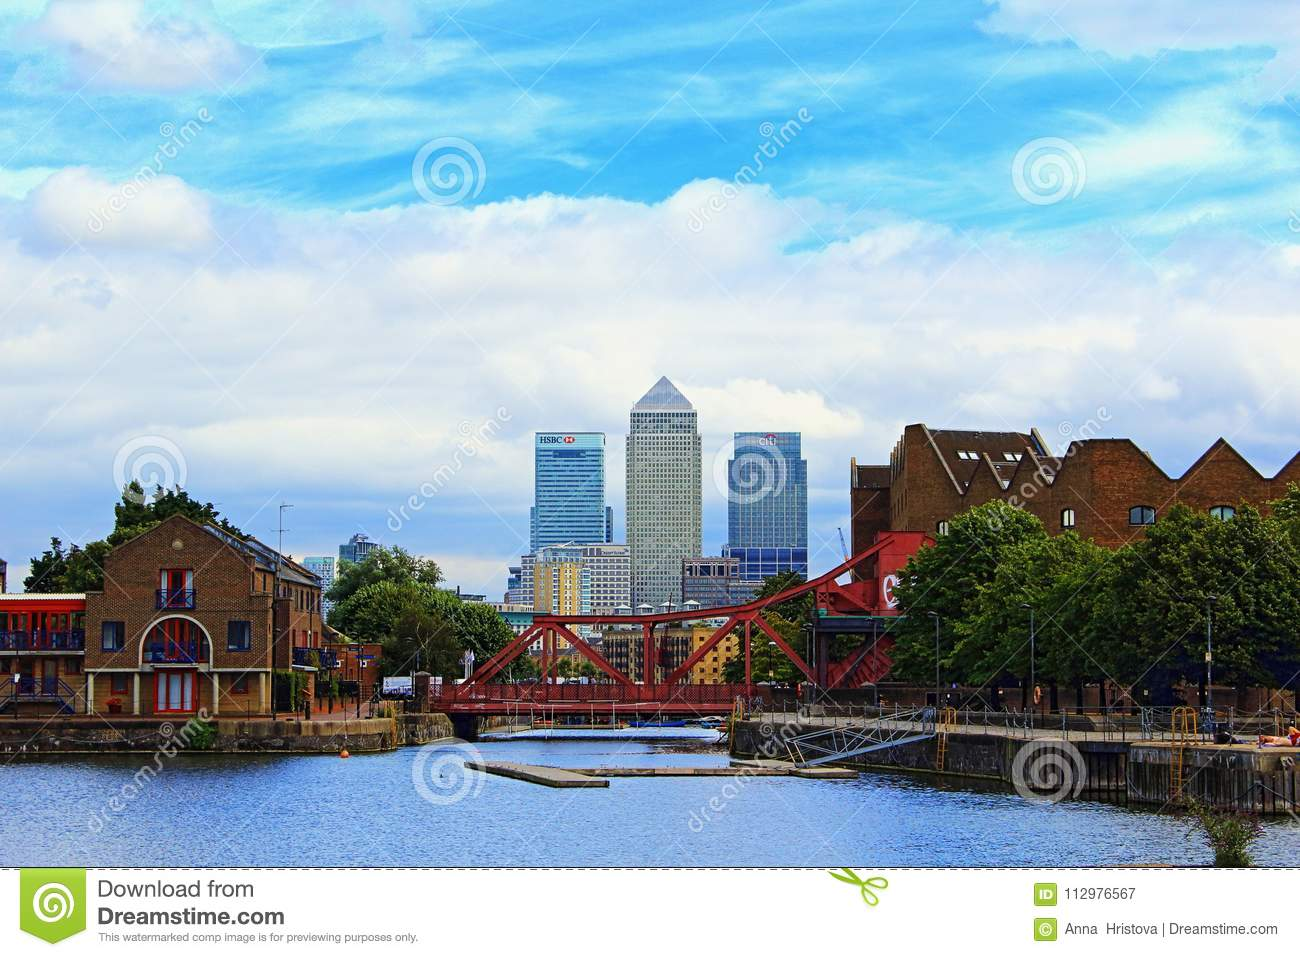 Shadwell Basin Canary Wharf buildings London Great Britain